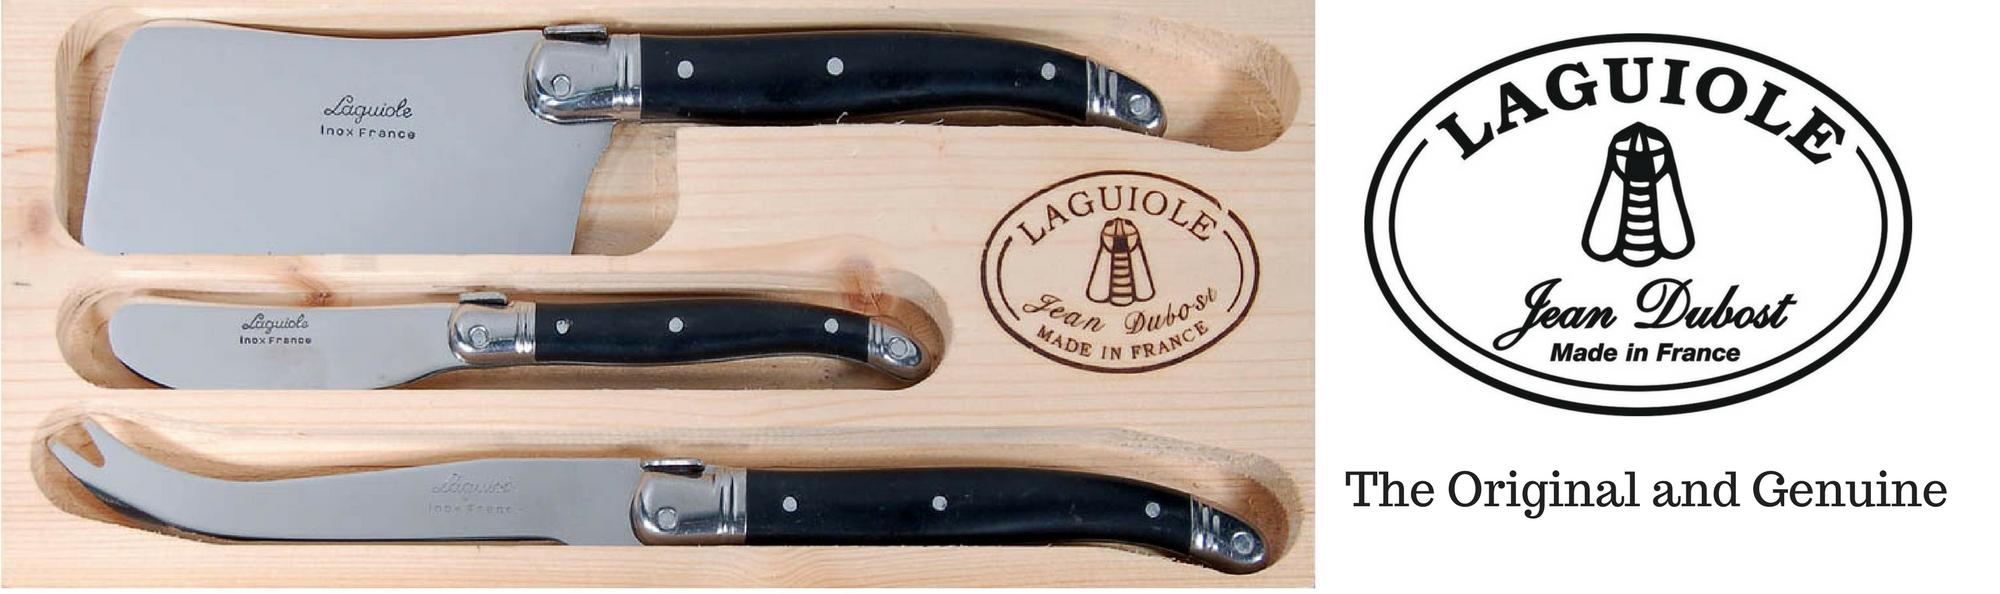 Laguiole Jean Dubost French cutlery